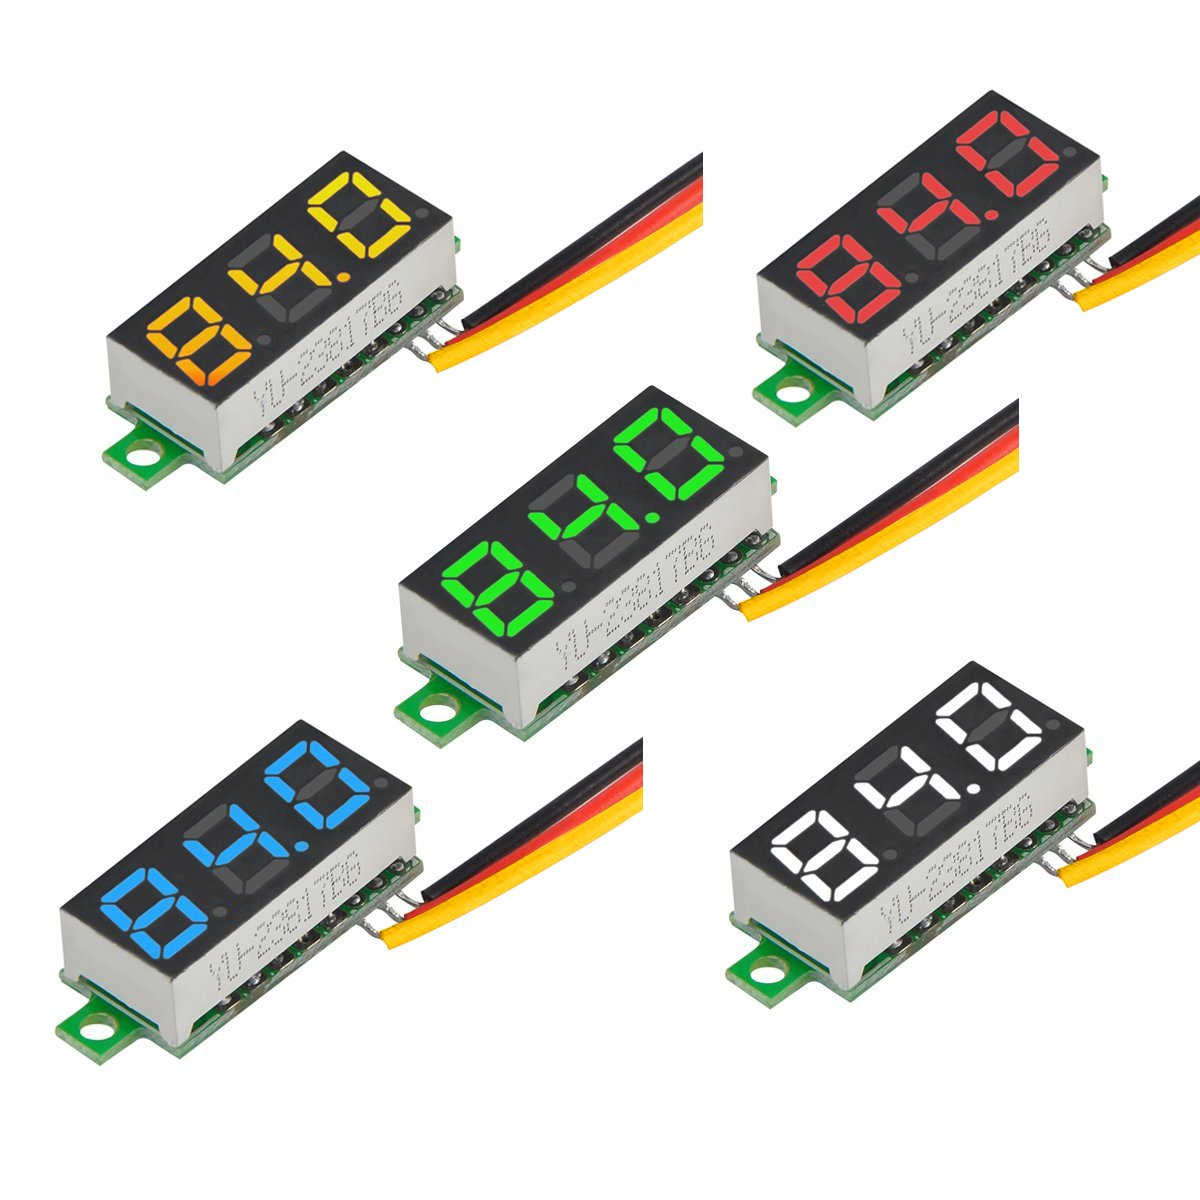 MakerFocus 5pcs Mini Digital Voltmeter DC 0.28 Inch Three-Line DC 0-100V Mini Digital Voltmeter Gauge Tester LED Display Reverse Polarity Protection and Accurate Pressure Measurement 5 Colours by MakerFocus (Image #8)